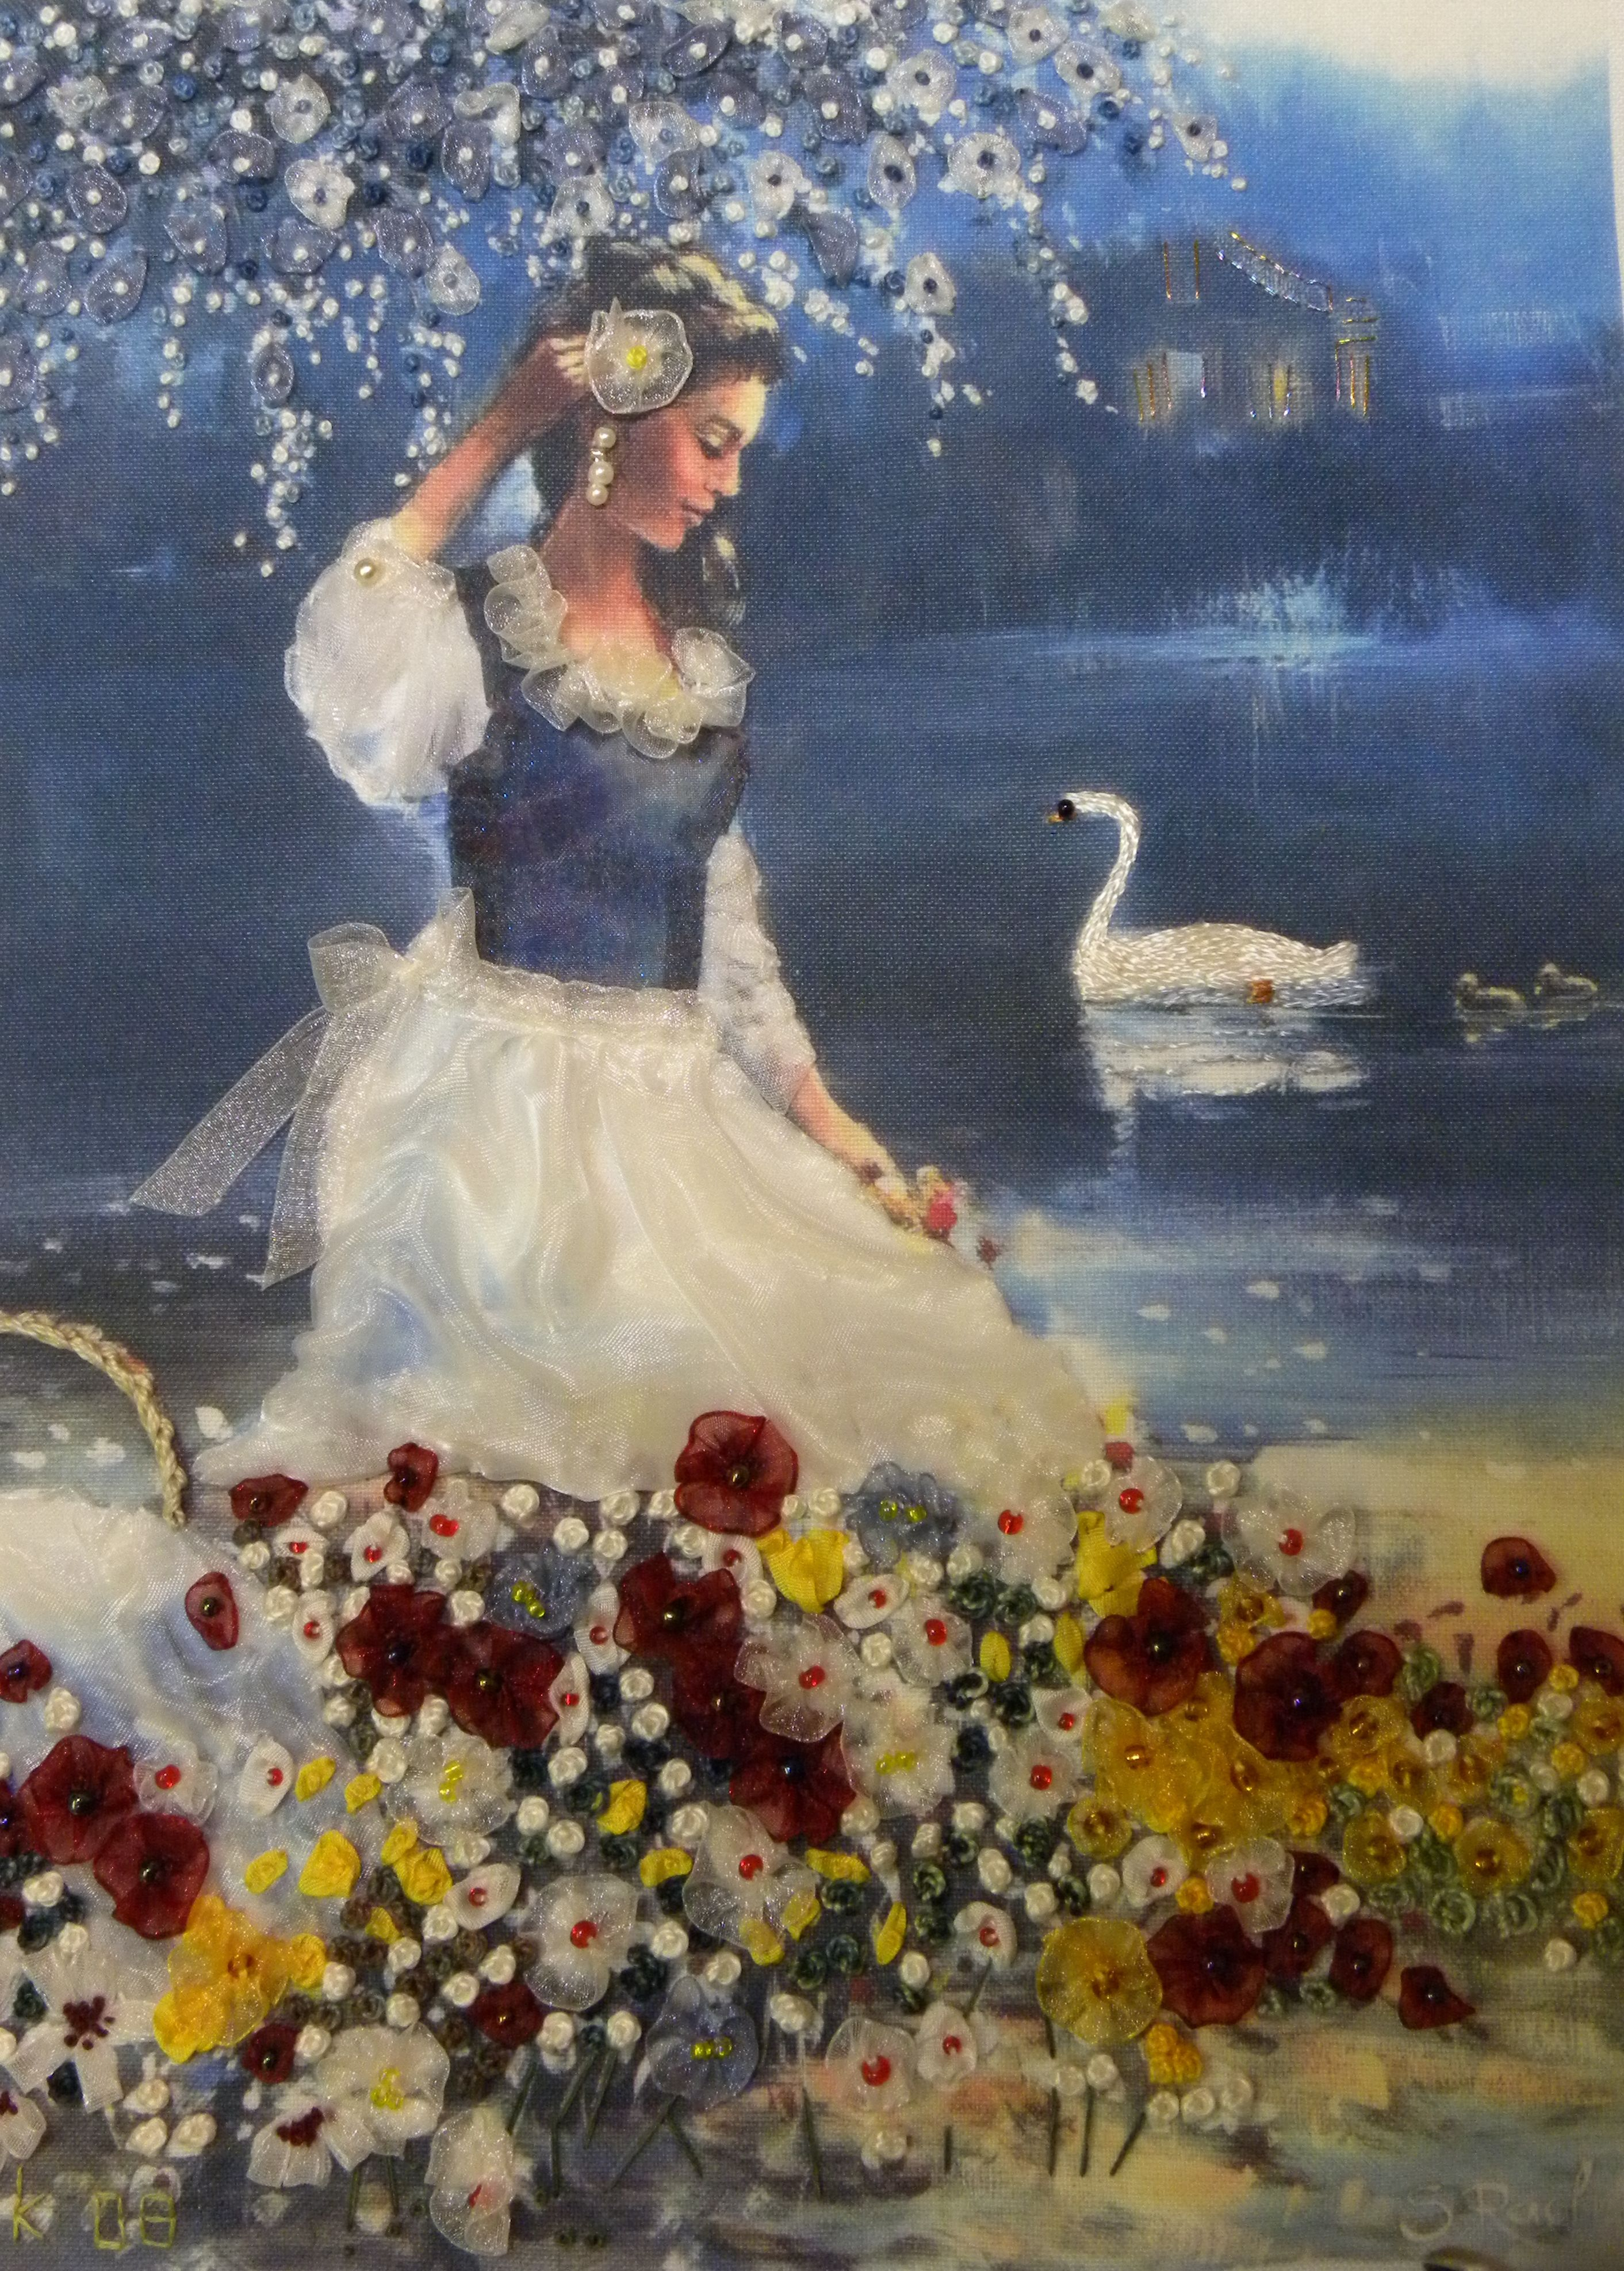 Girl with swan in Ribbon Embroidery by Veronica Kern on print of S Rachelle.